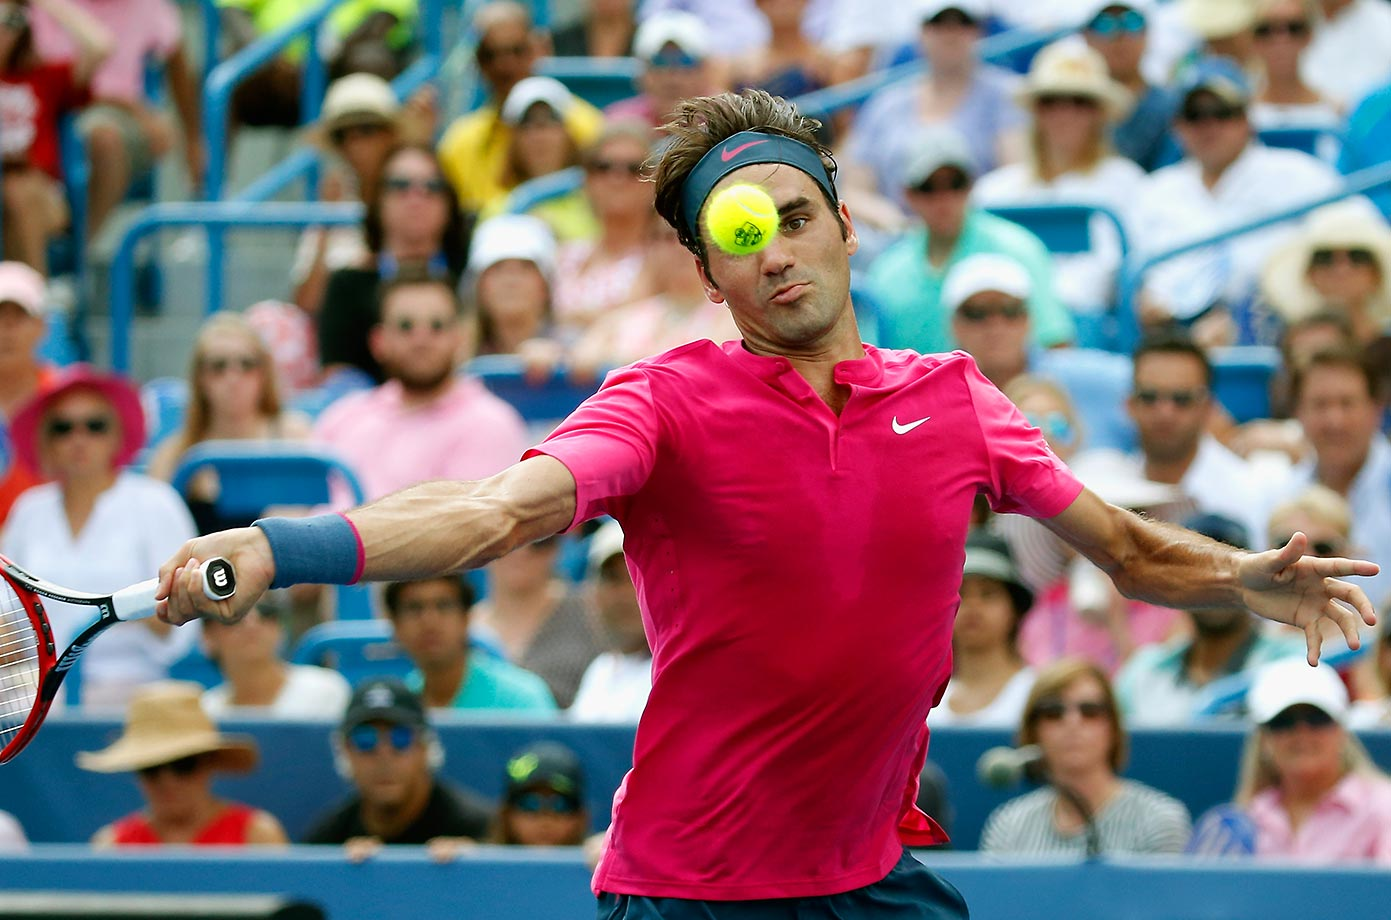 Roger Federer plays Novak Djokovic in the finals of the Western & Southern Open in Cincinnati.